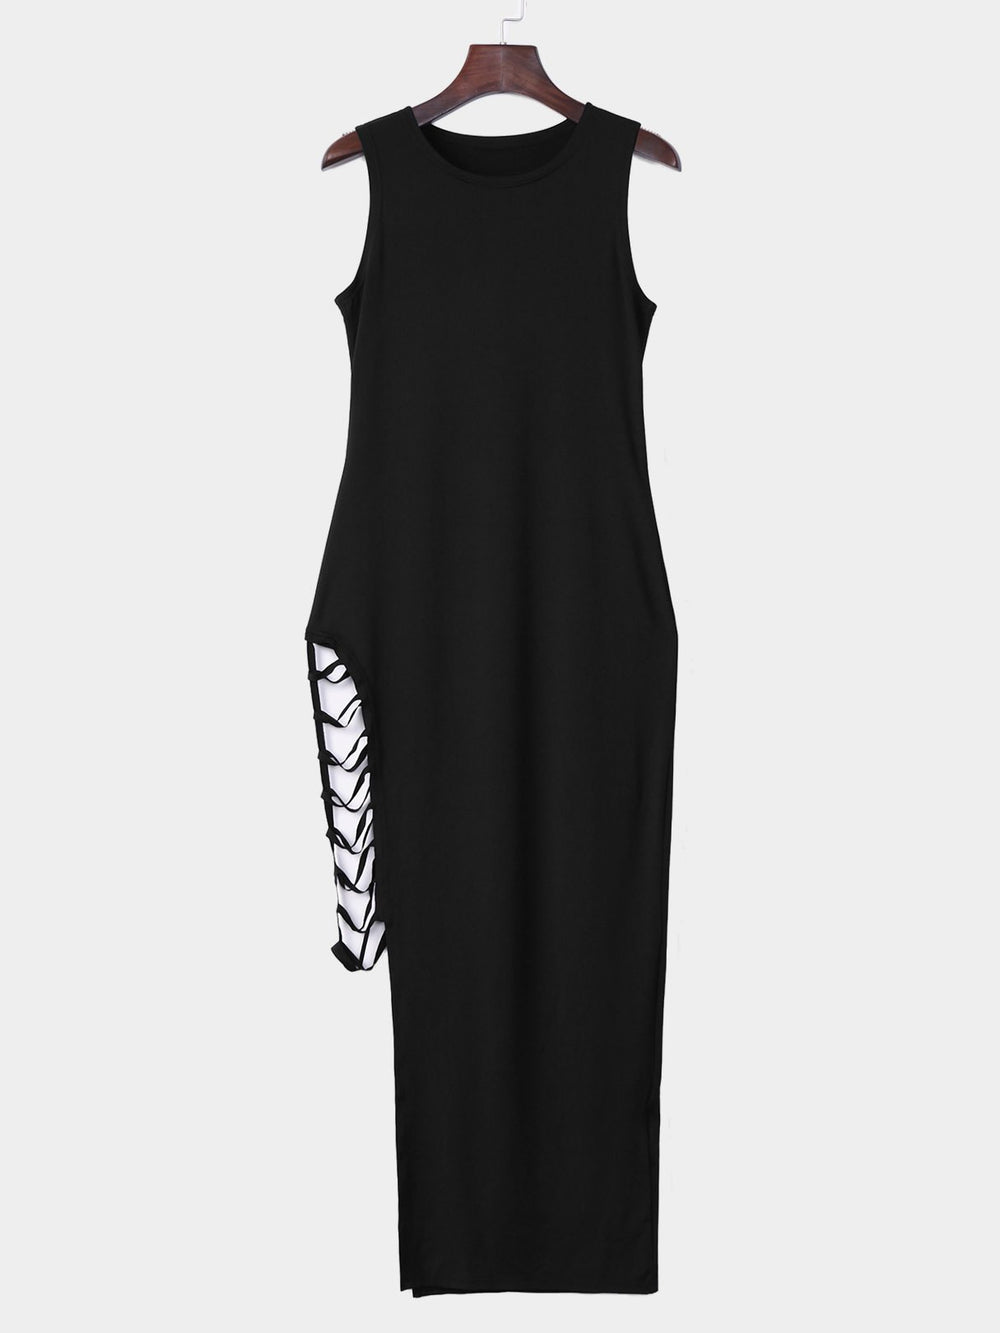 Womens Black Bodycon Dresses